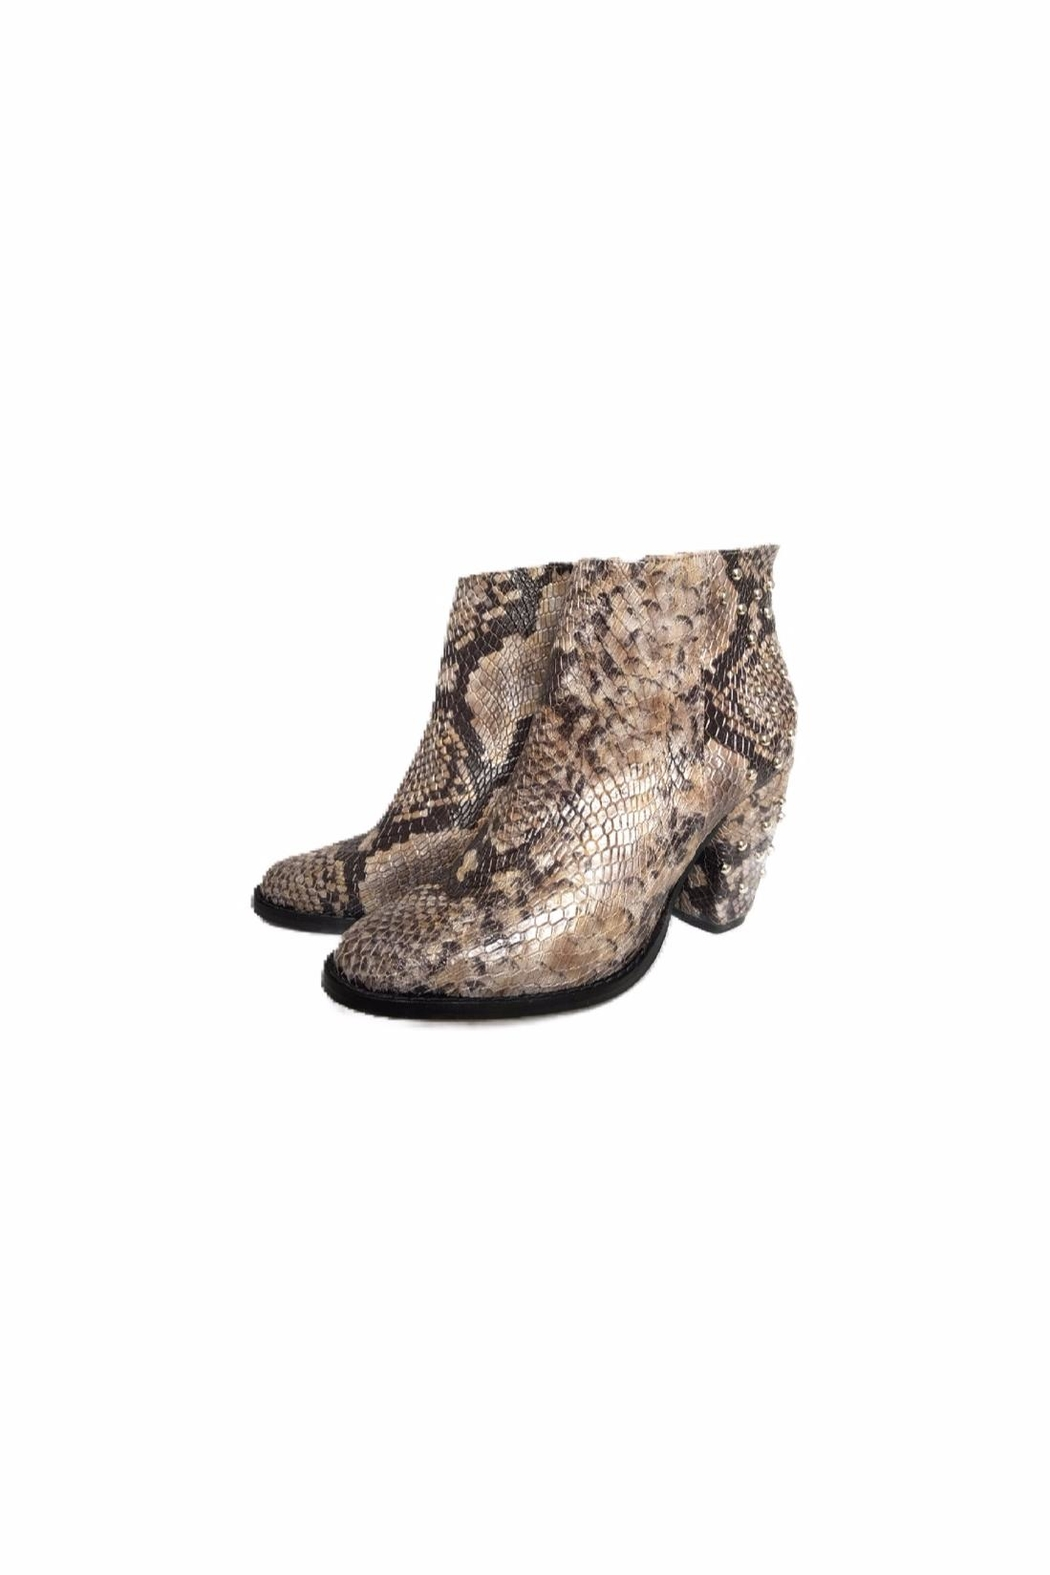 Bel Carril Brooklyn Taupe Boot - Front Full Image